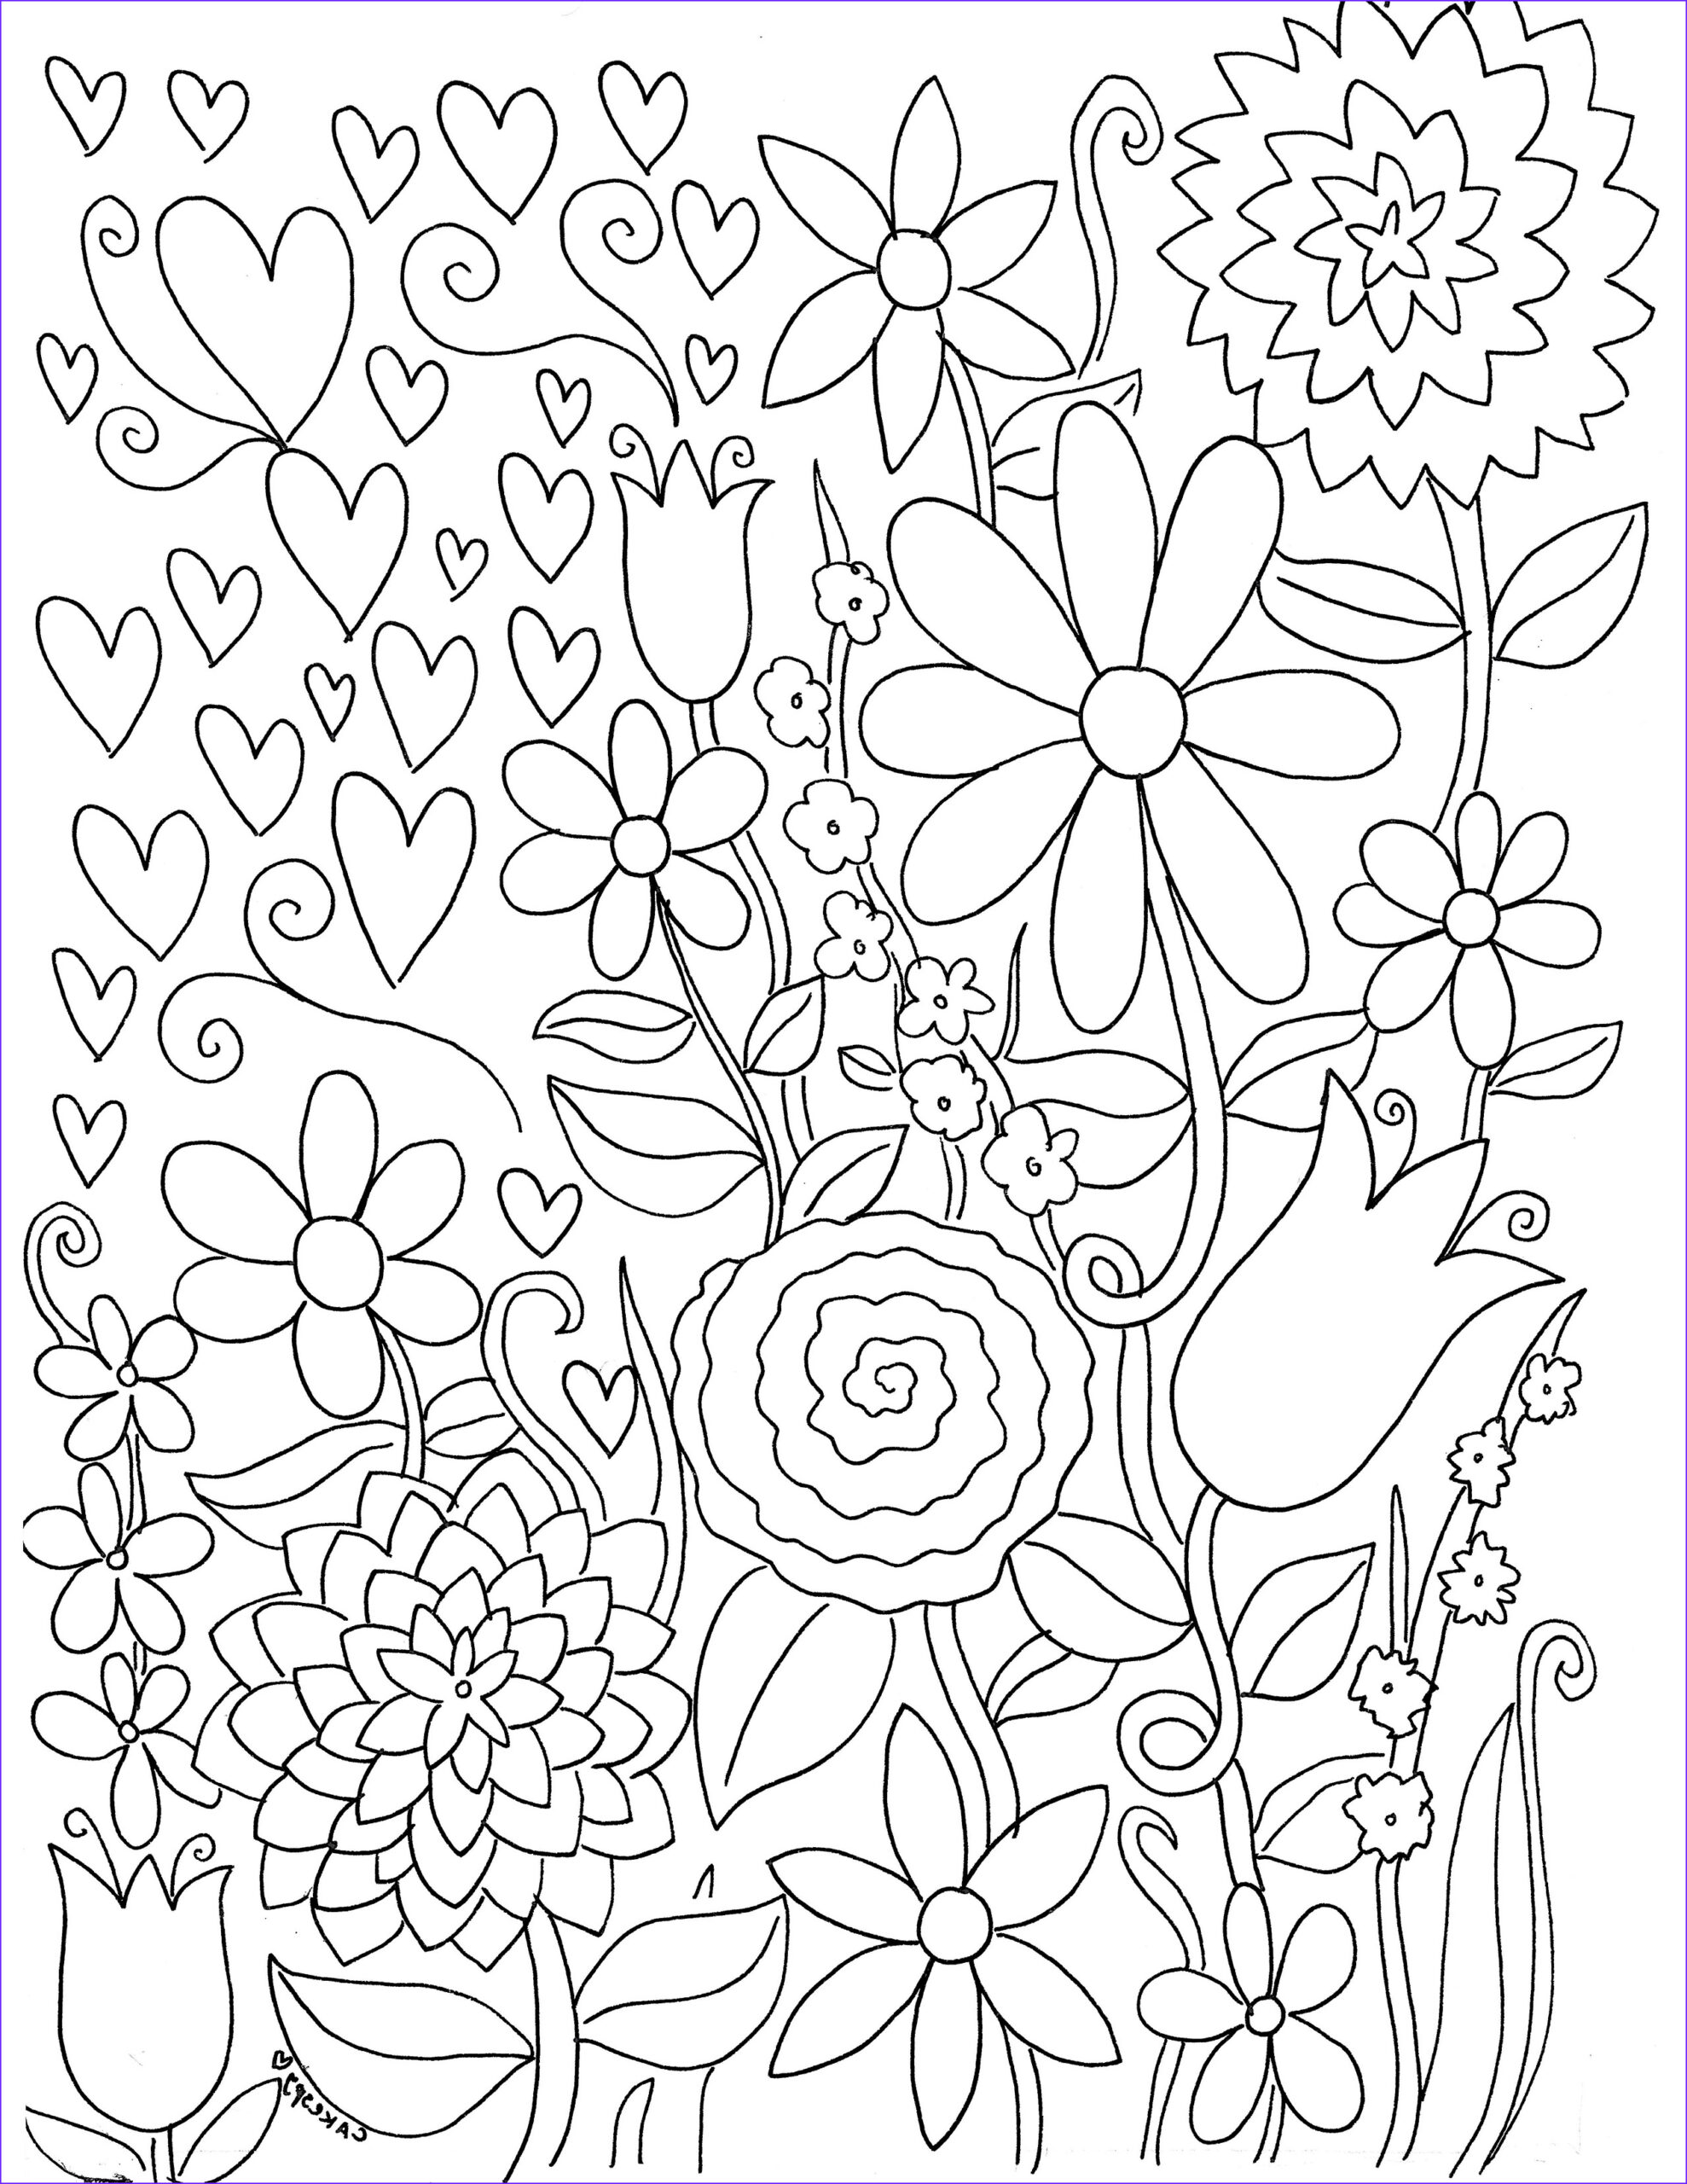 Grown Up Coloring Pages Unique Gallery Free Coloring Book Pages for Grown Ups Inspiring Quotes